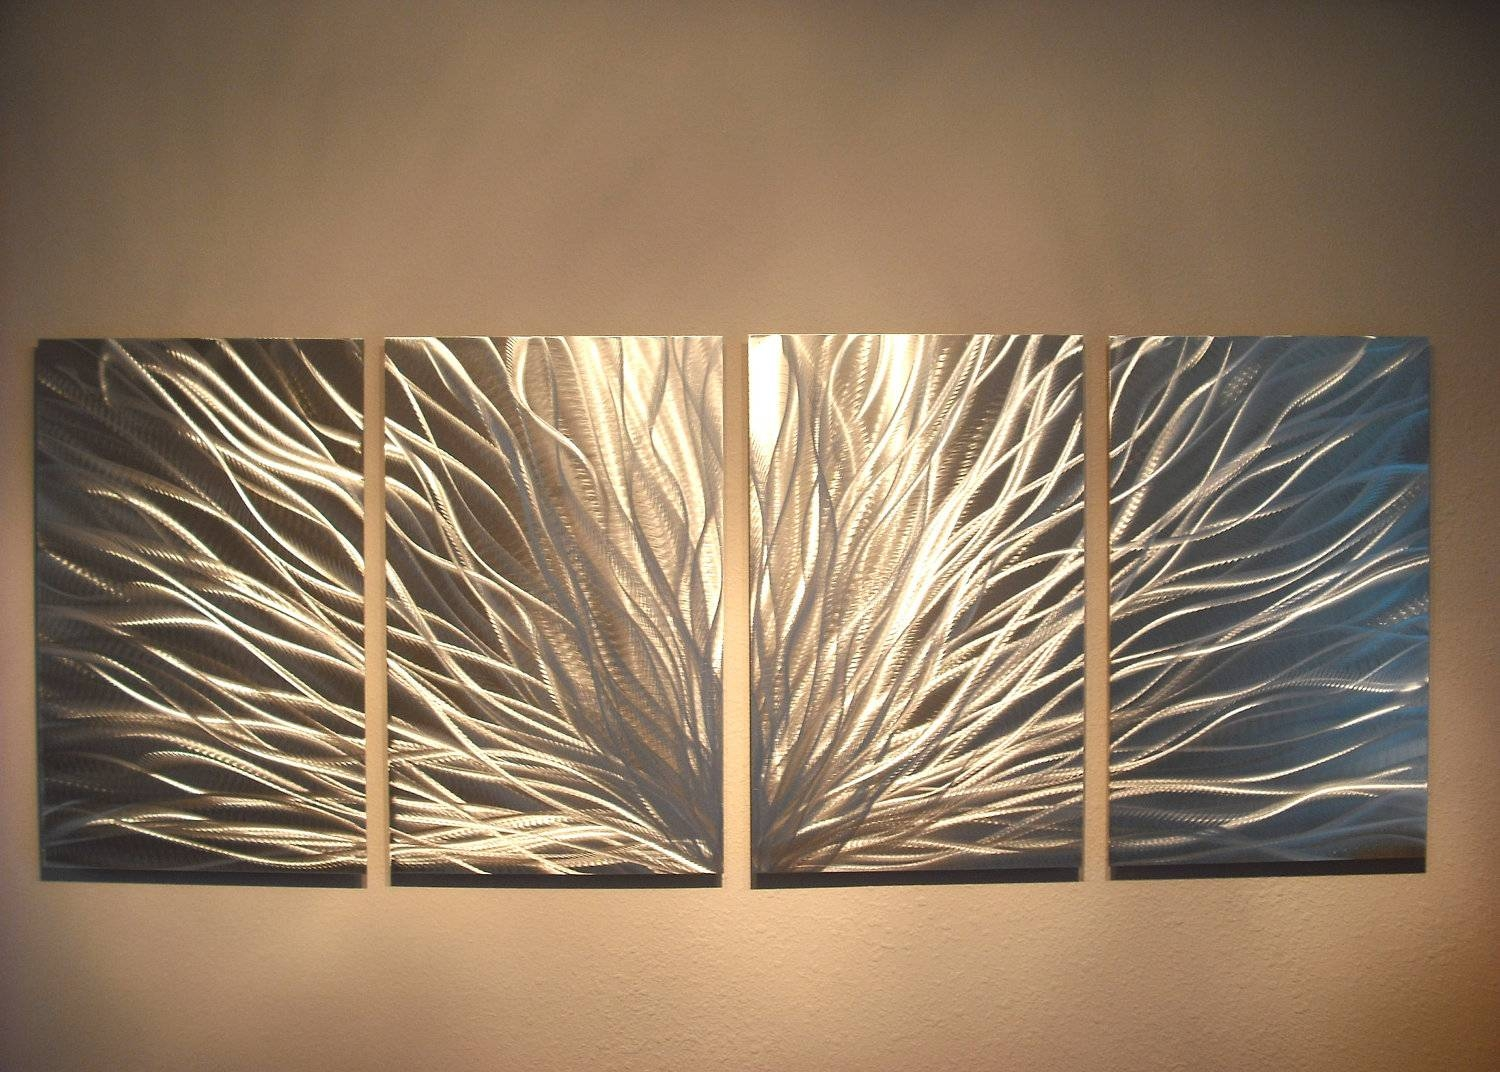 Radiance – Abstract Metal Wall Art Contemporary Modern Decor In Most Current Metal Wall Art (View 5 of 30)